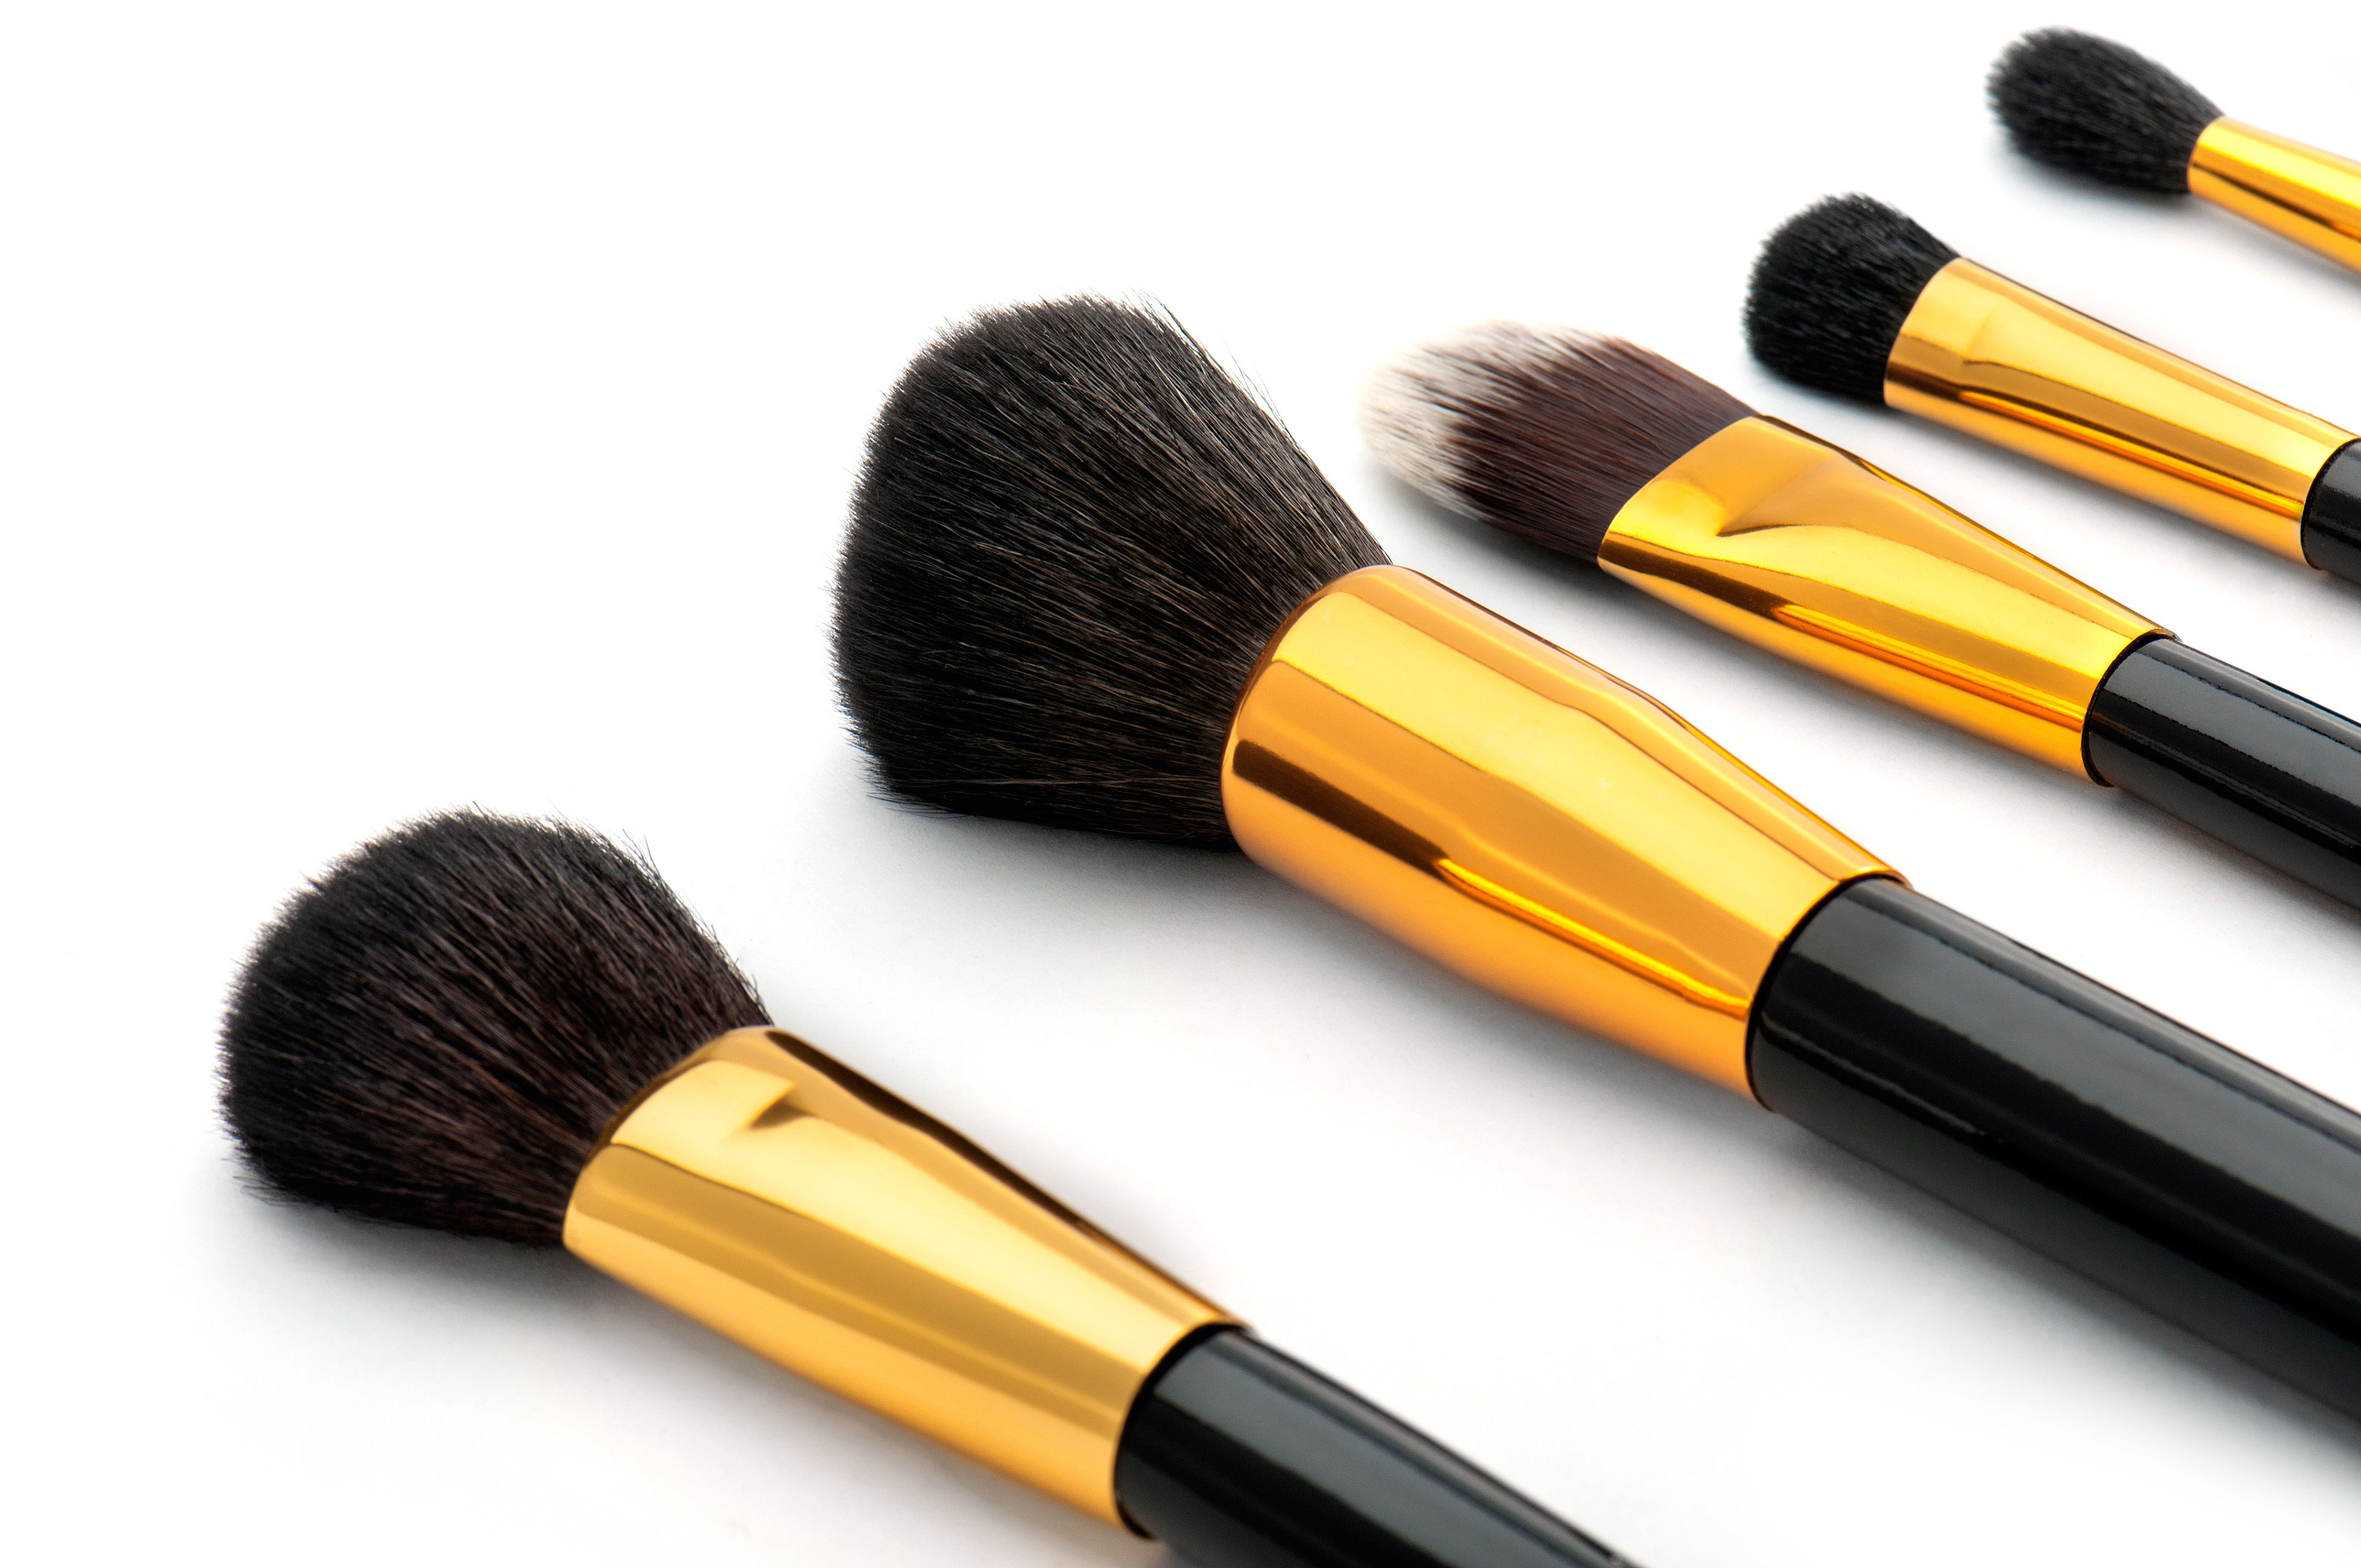 Use the right brushes! You need at least 5! 1. The Angled